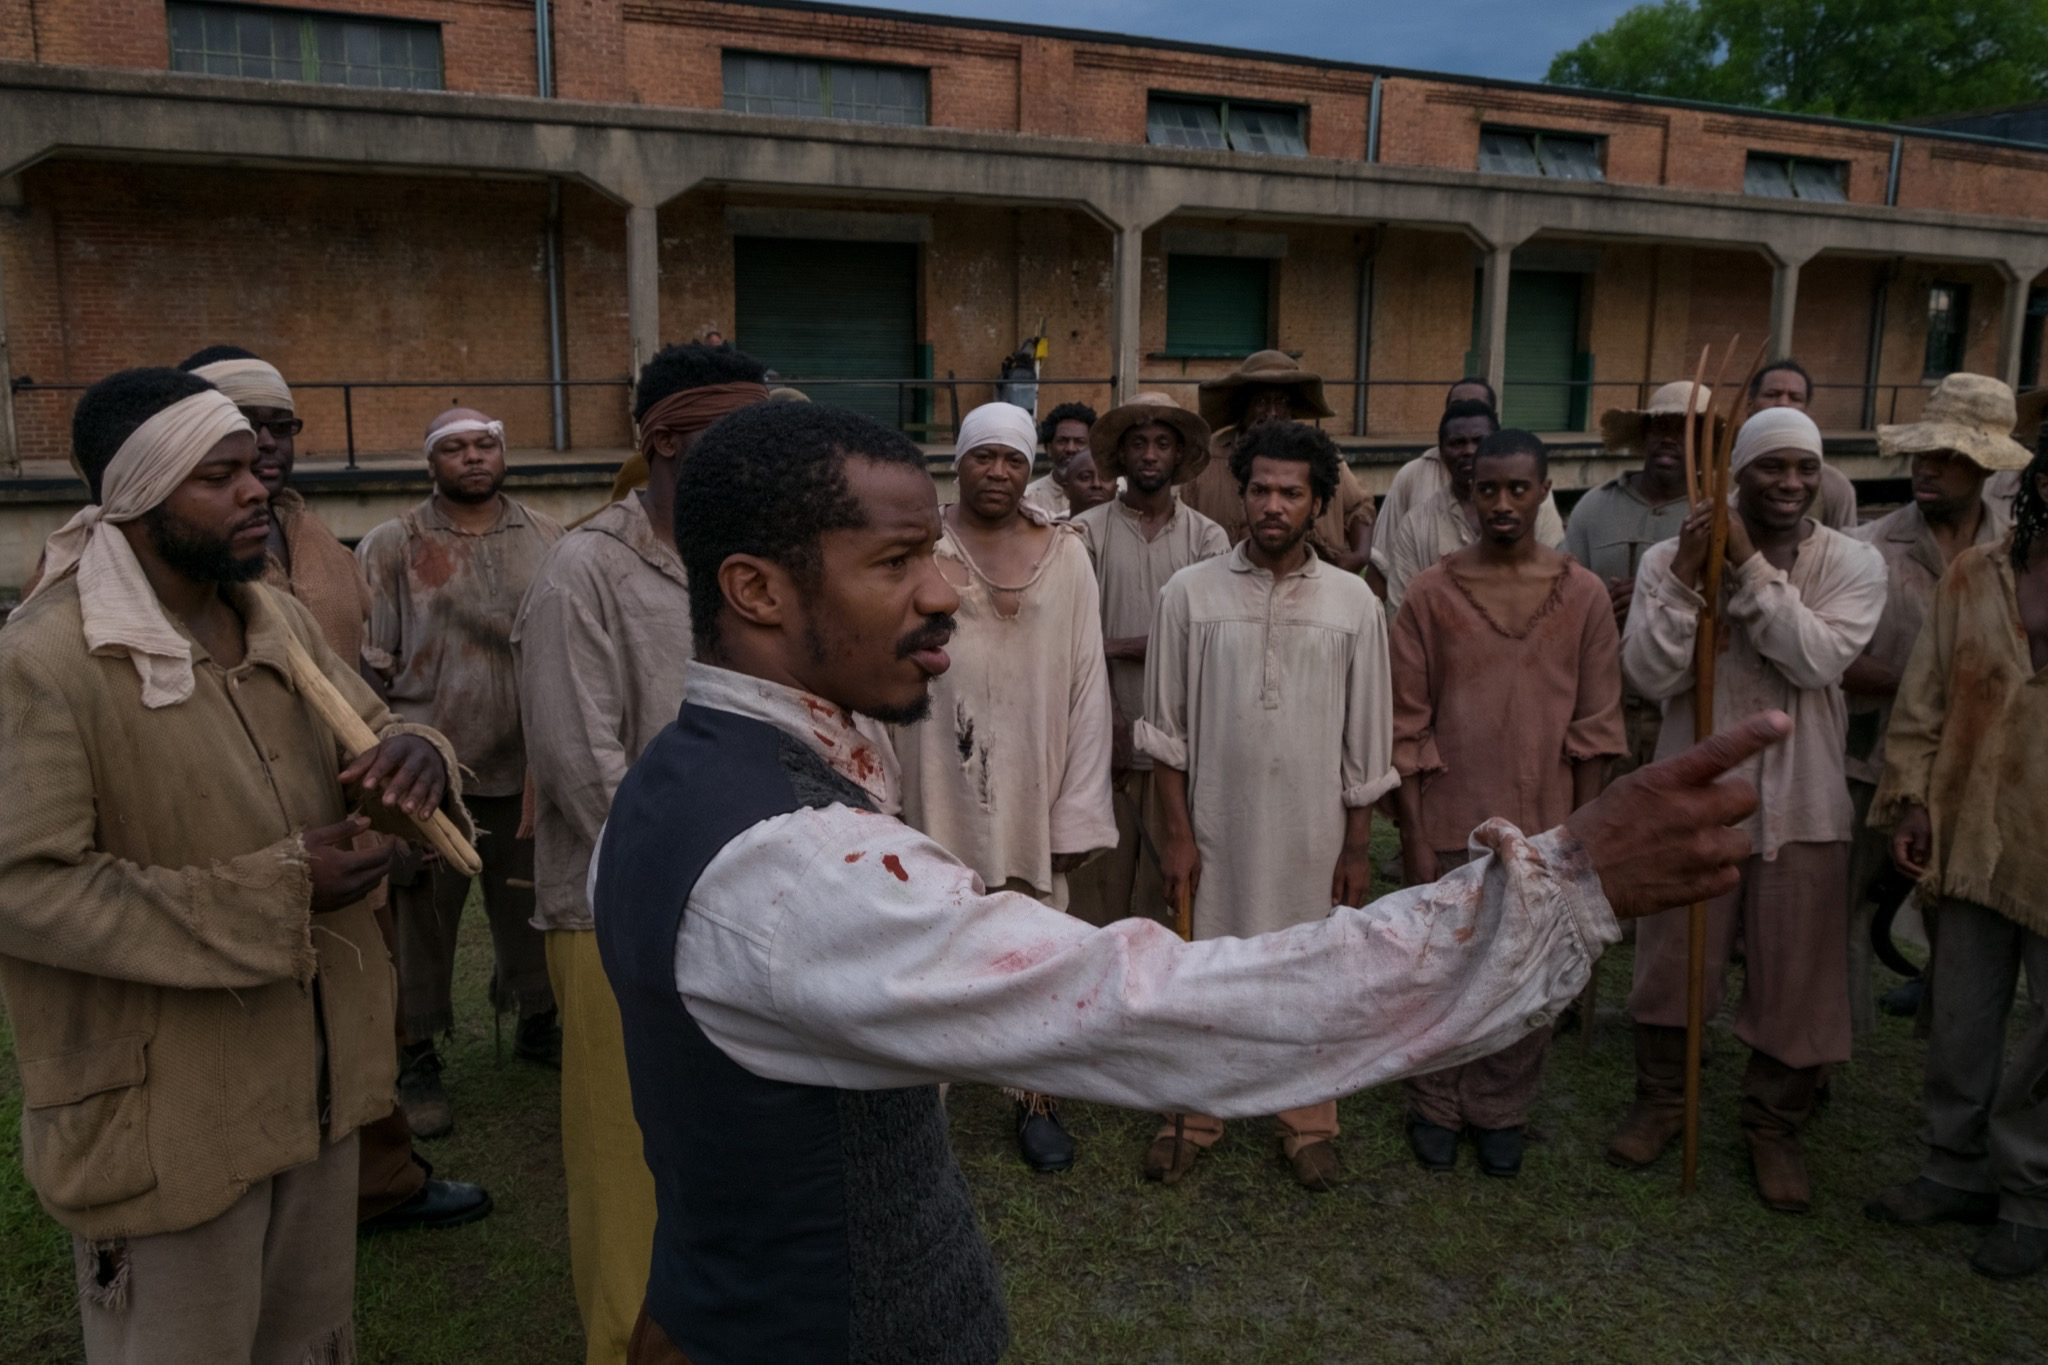 The Birth of a Nation image 3